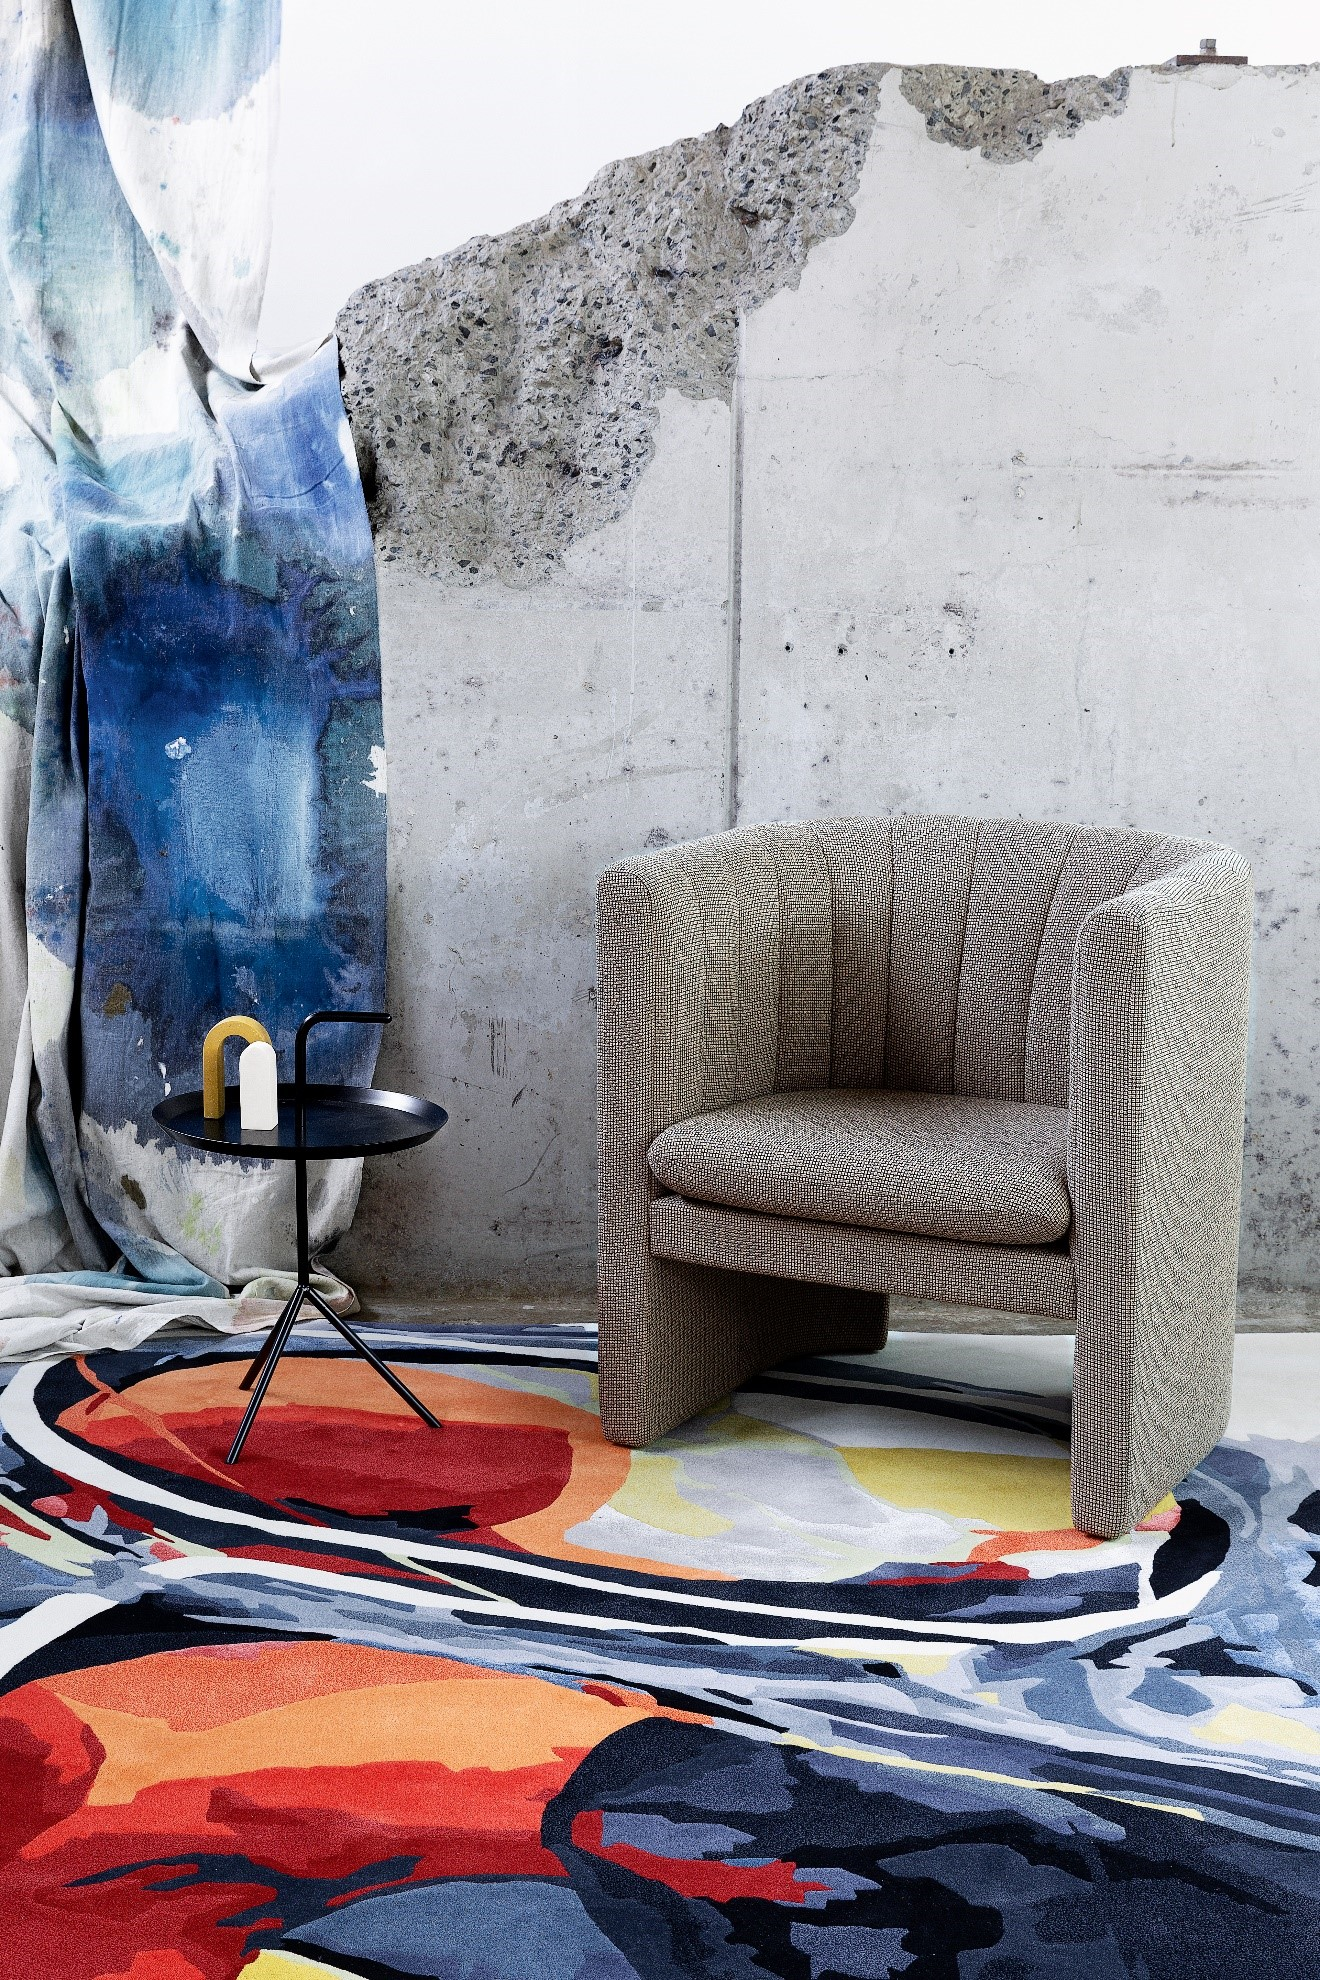 Designer Rugs Rose To Challenge, Creating A New Collection Of Three Hand Tufted Rugs